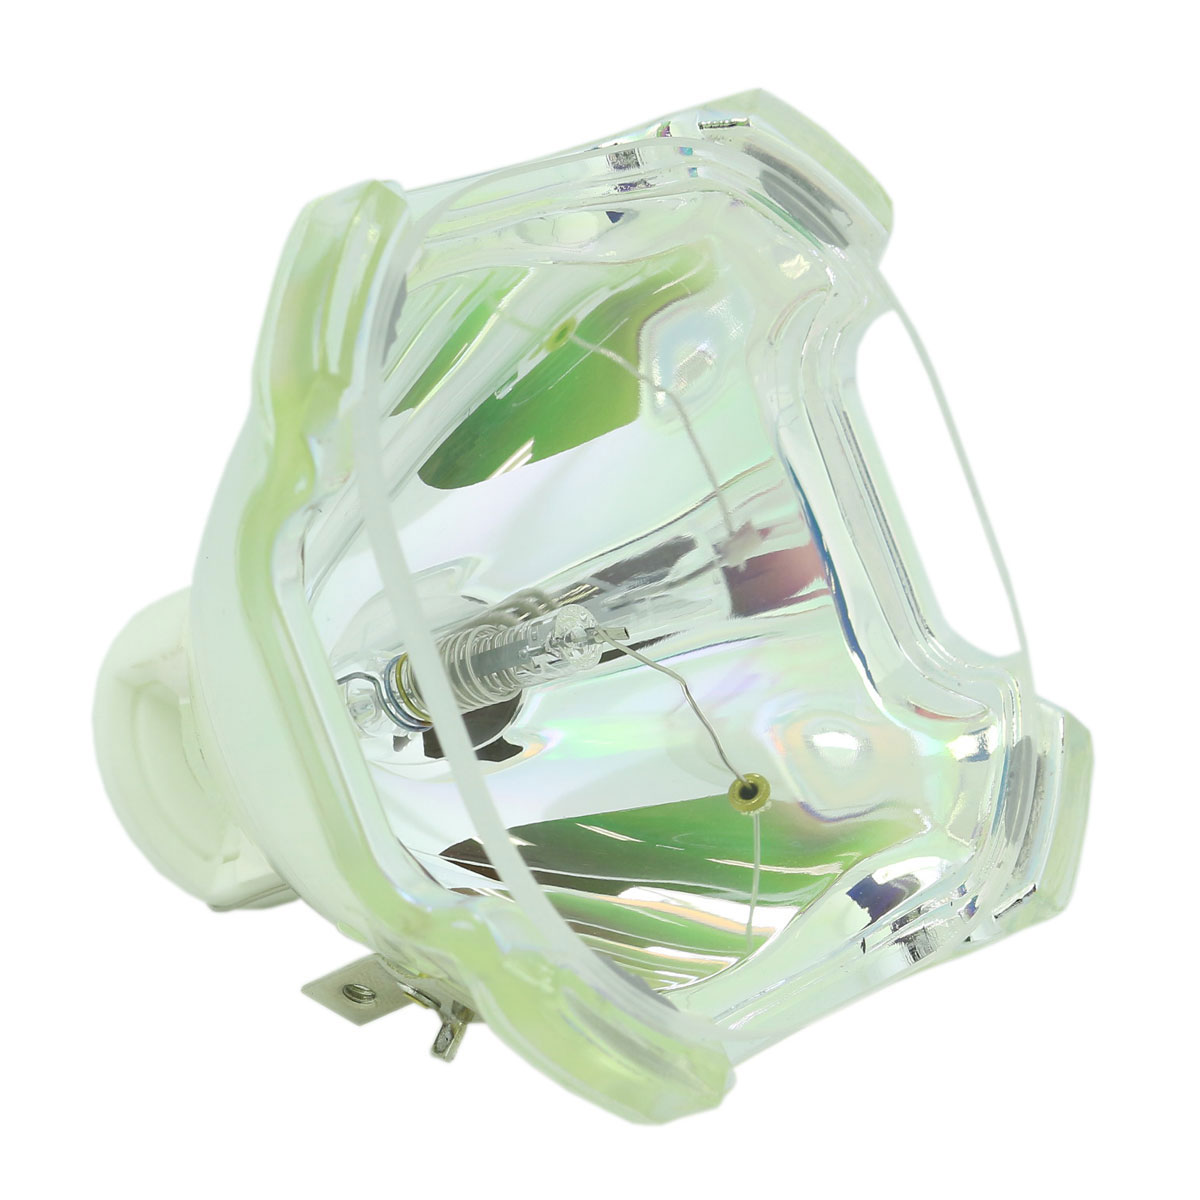 Lutema Platinum for Sanyo PLC-XT3200 Projector Lamp with Housing (Original Philips Bulb Inside) - image 1 of 5